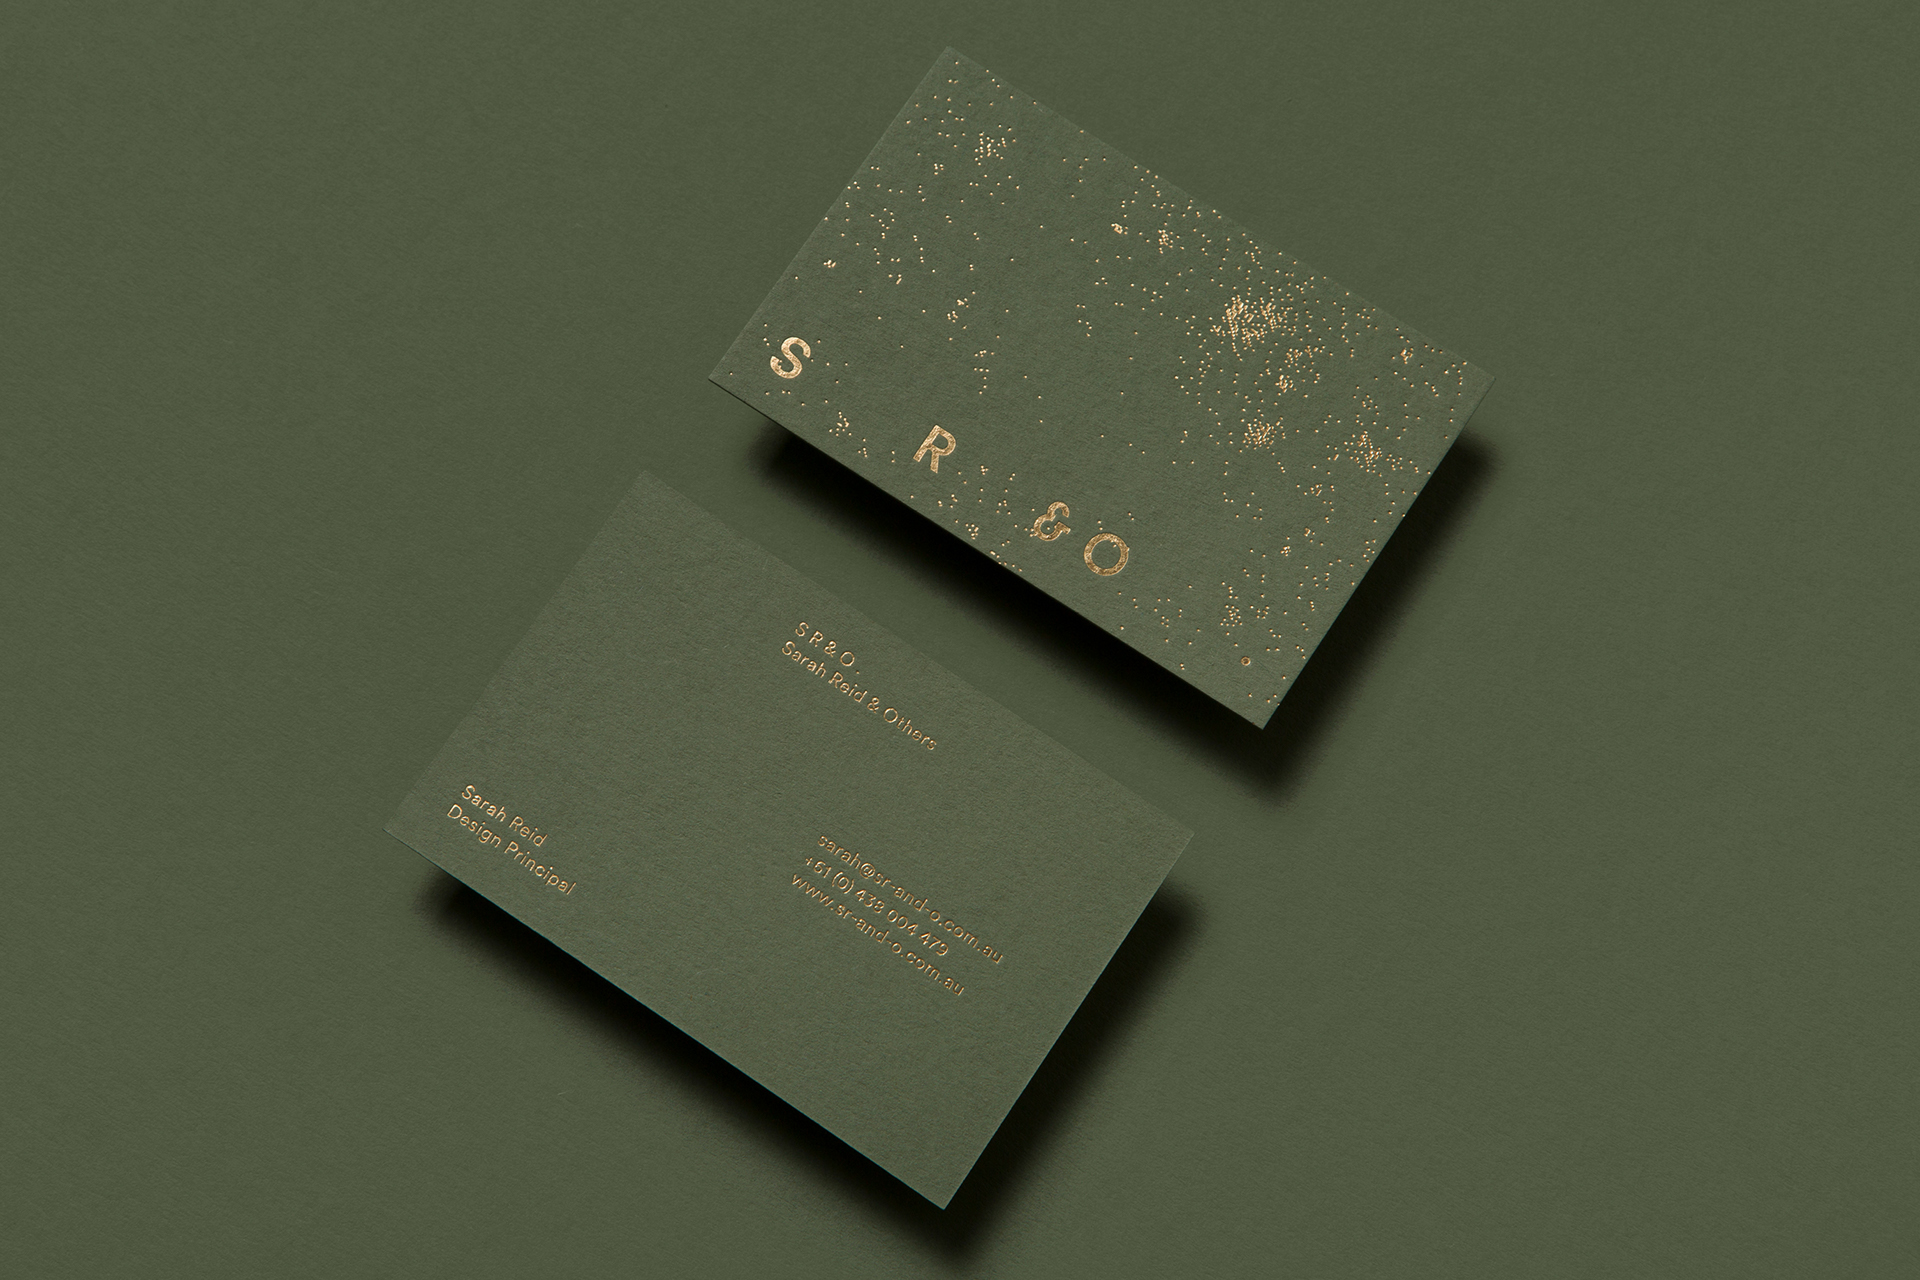 Foil stamped business cards for SR&O by Pop & Pac on Colorplan Mid Green 540gsm